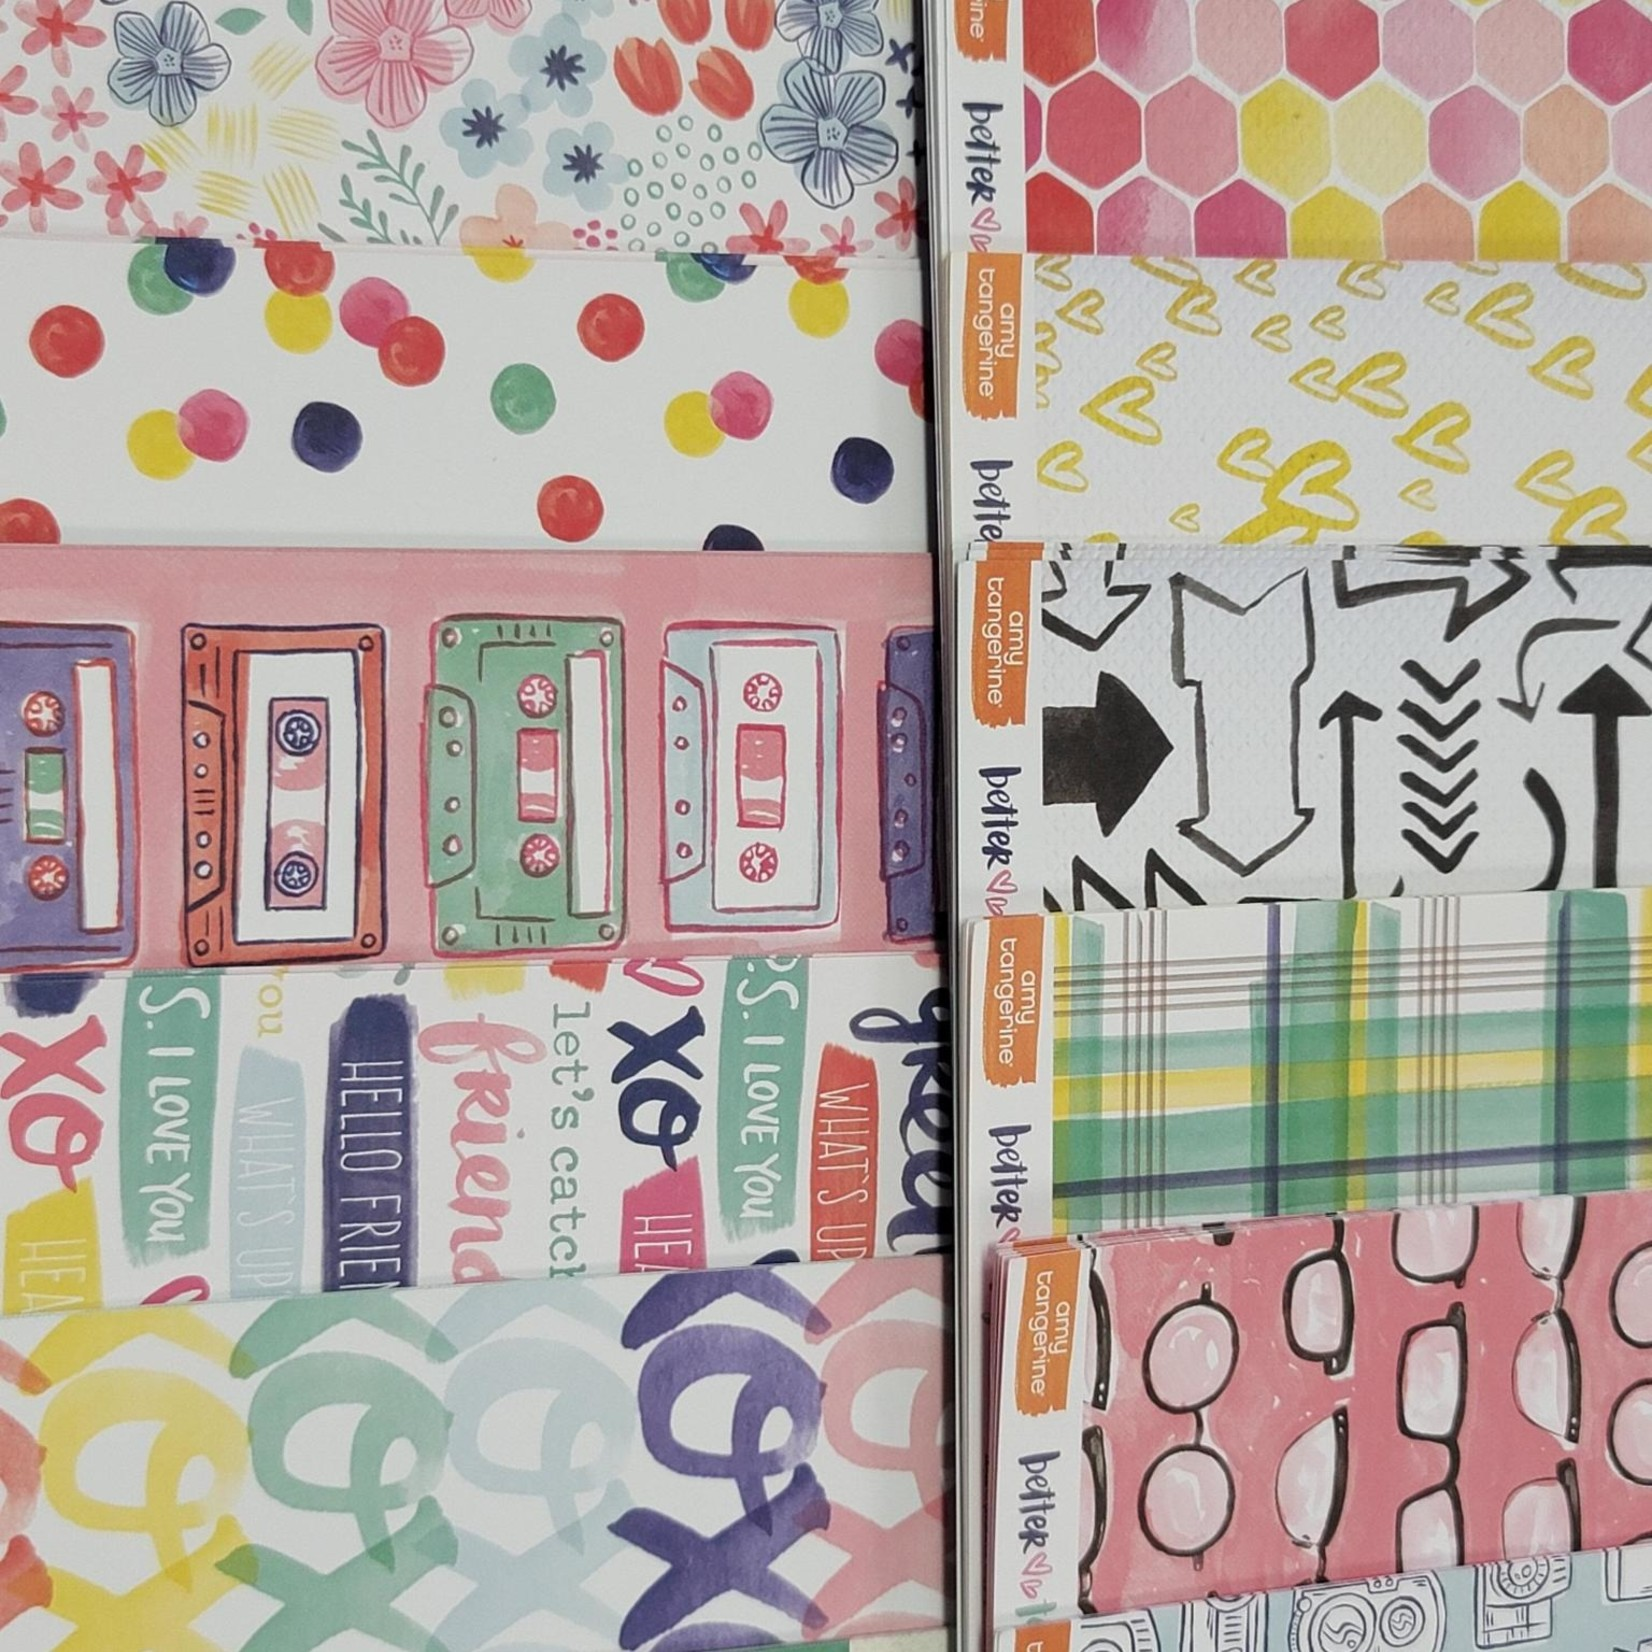 American Crafts amy tangerine - better together - paper pack for folio album